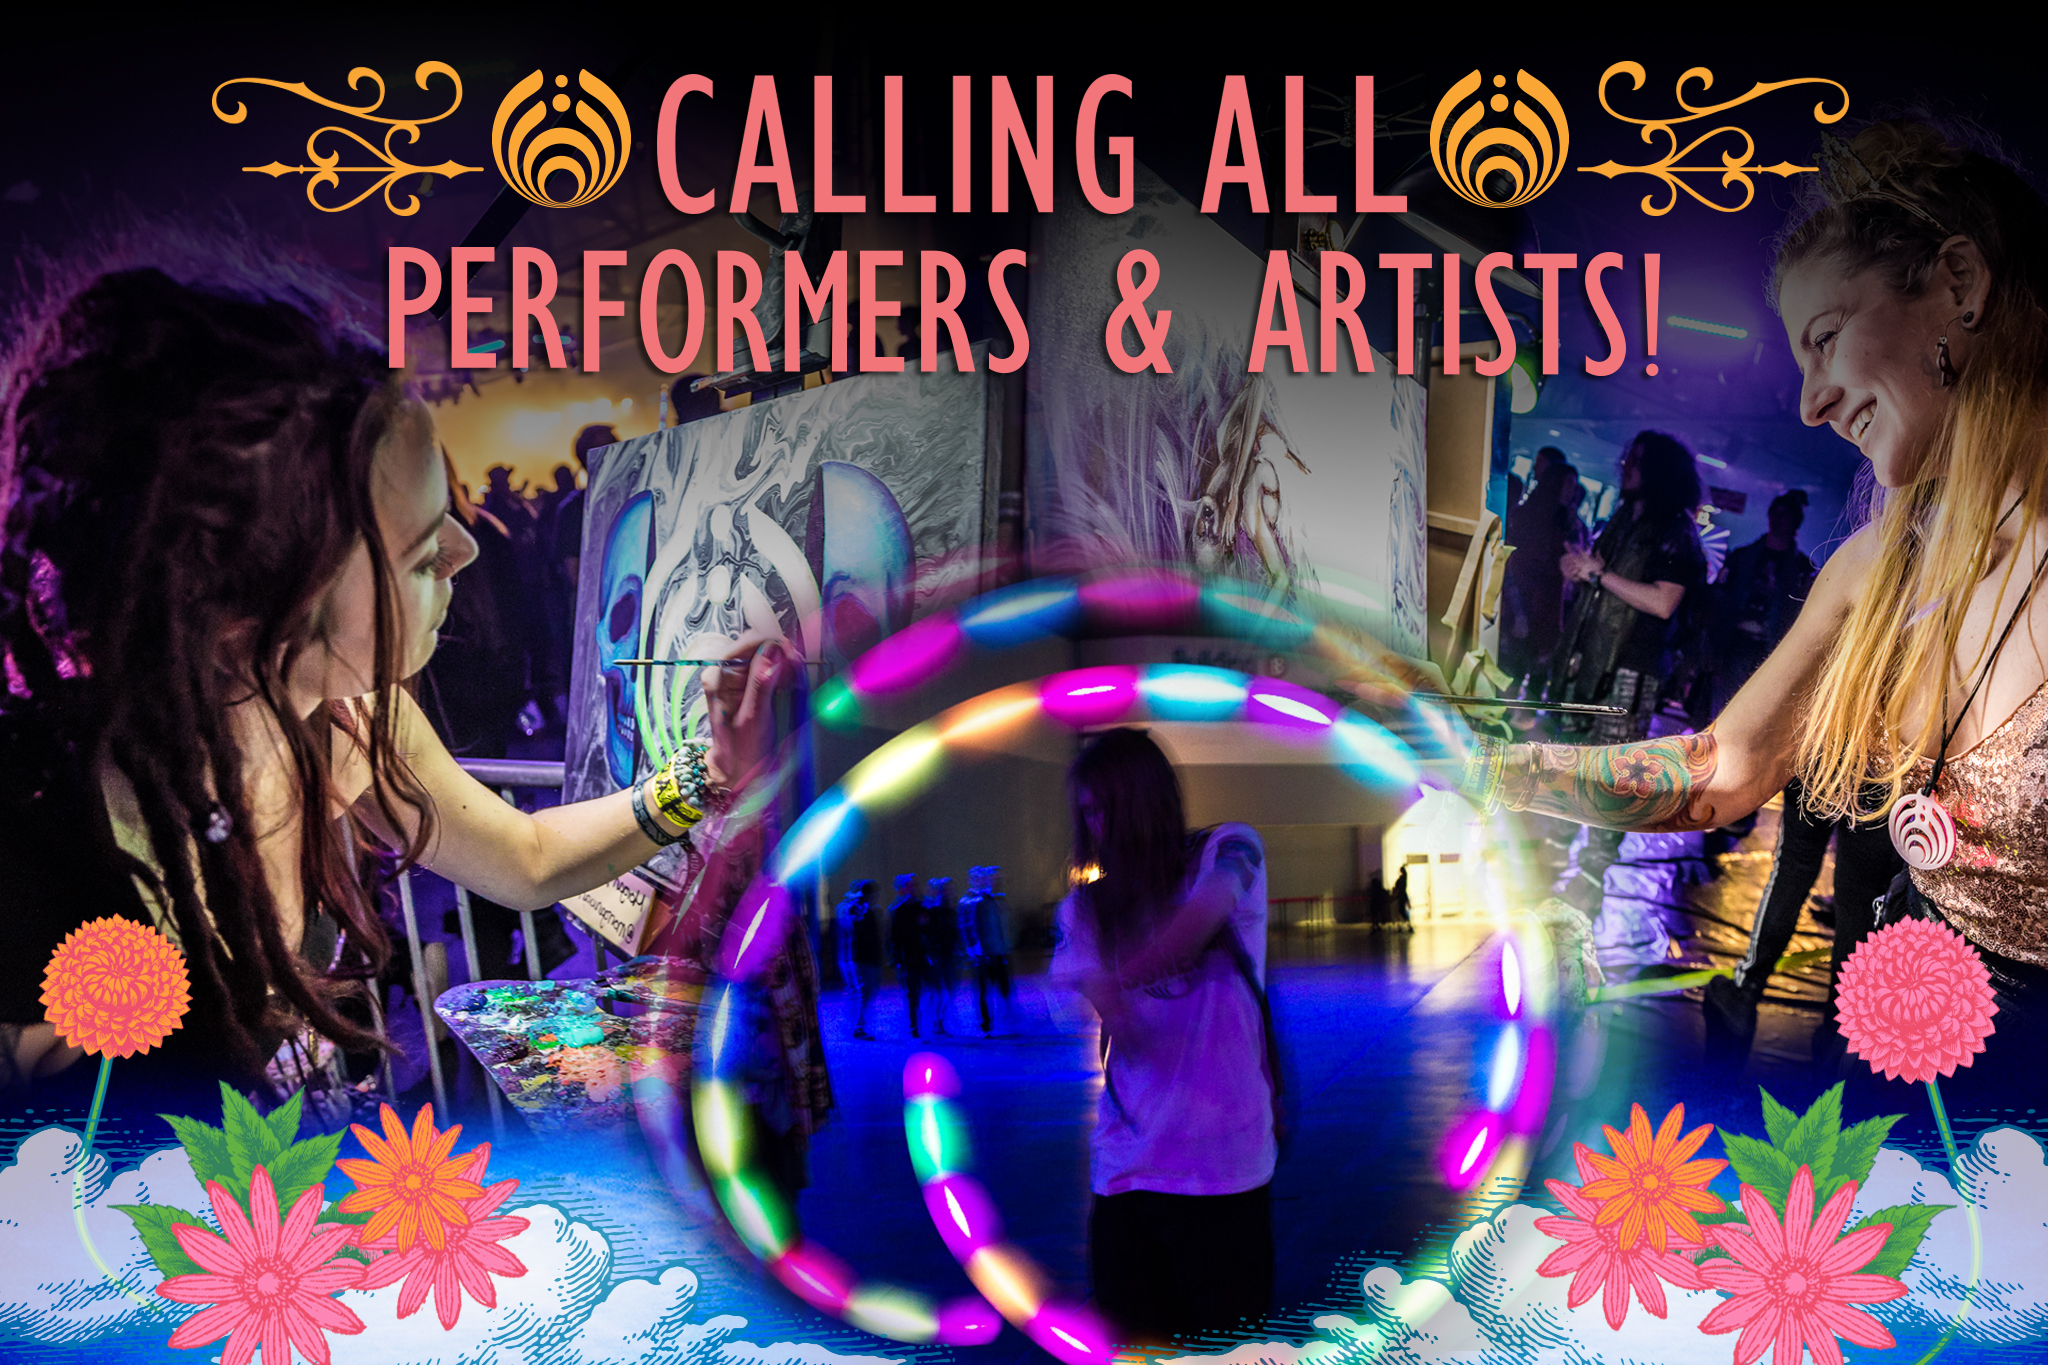 SPRING GATHERING 2018 Art and Performance Applications